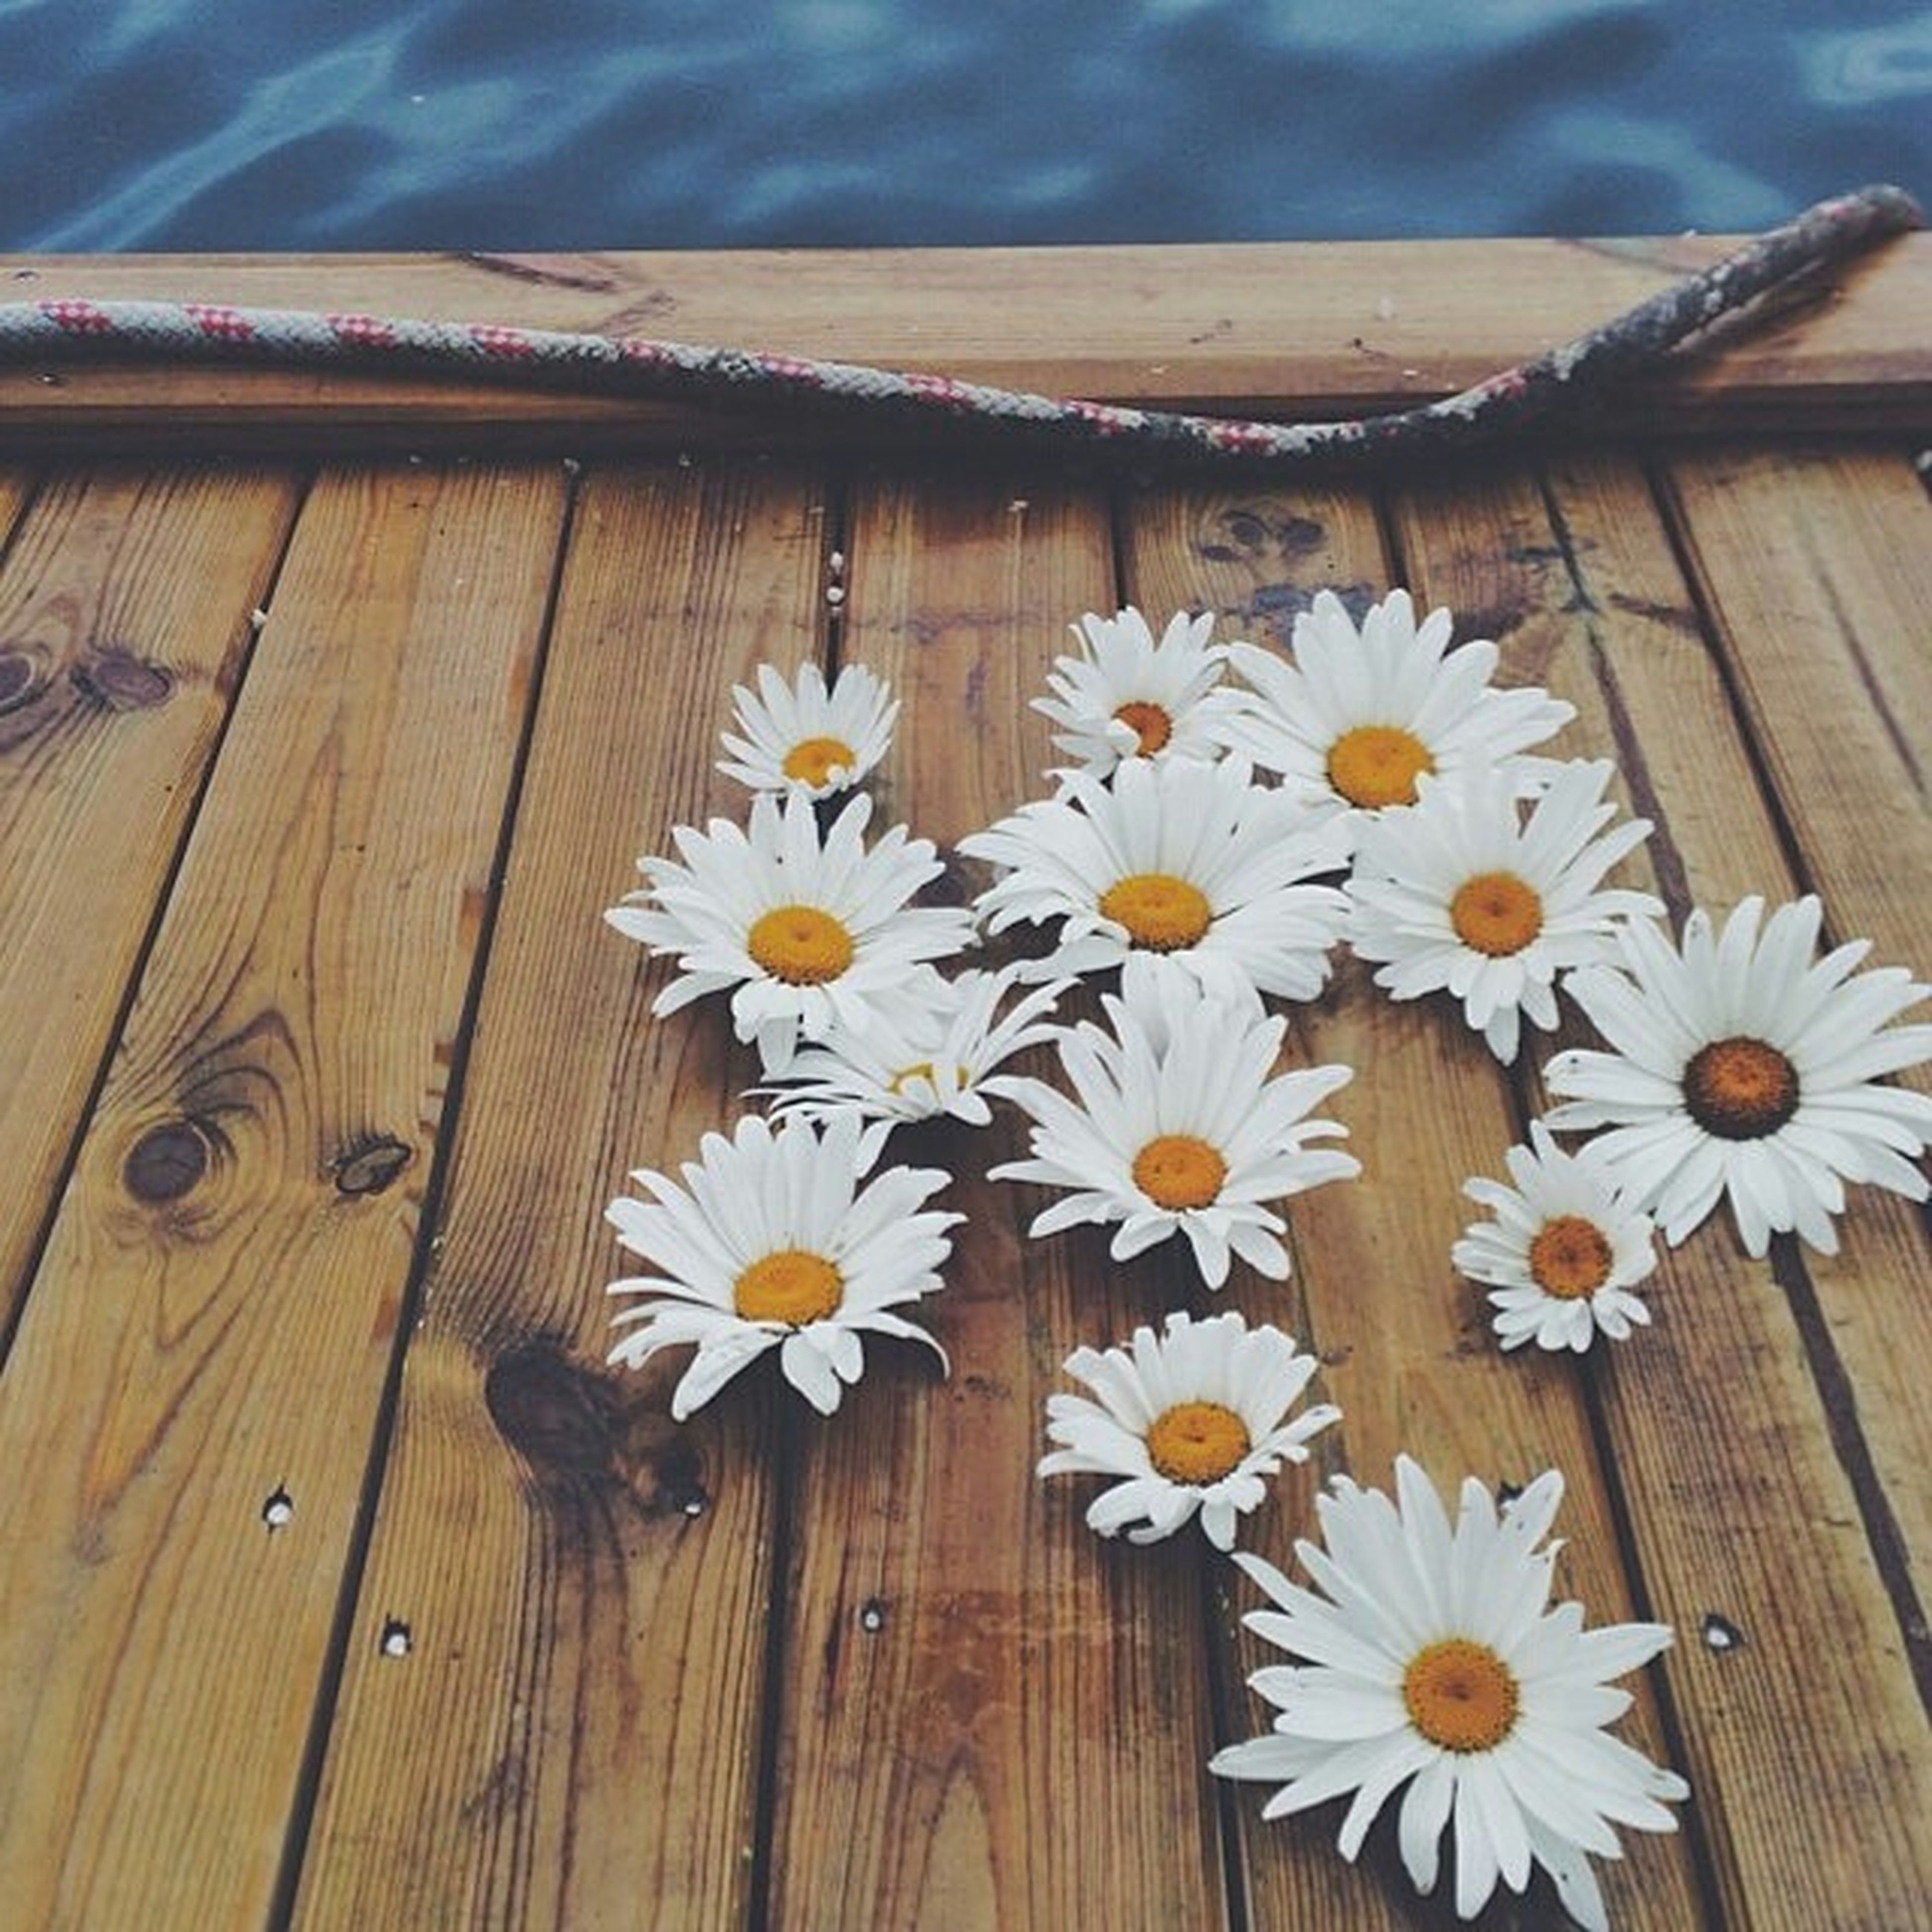 flower, wood - material, freshness, wooden, fragility, petal, flower head, white color, beauty in nature, wood, close-up, daisy, nature, growth, high angle view, day, plant, no people, plank, table